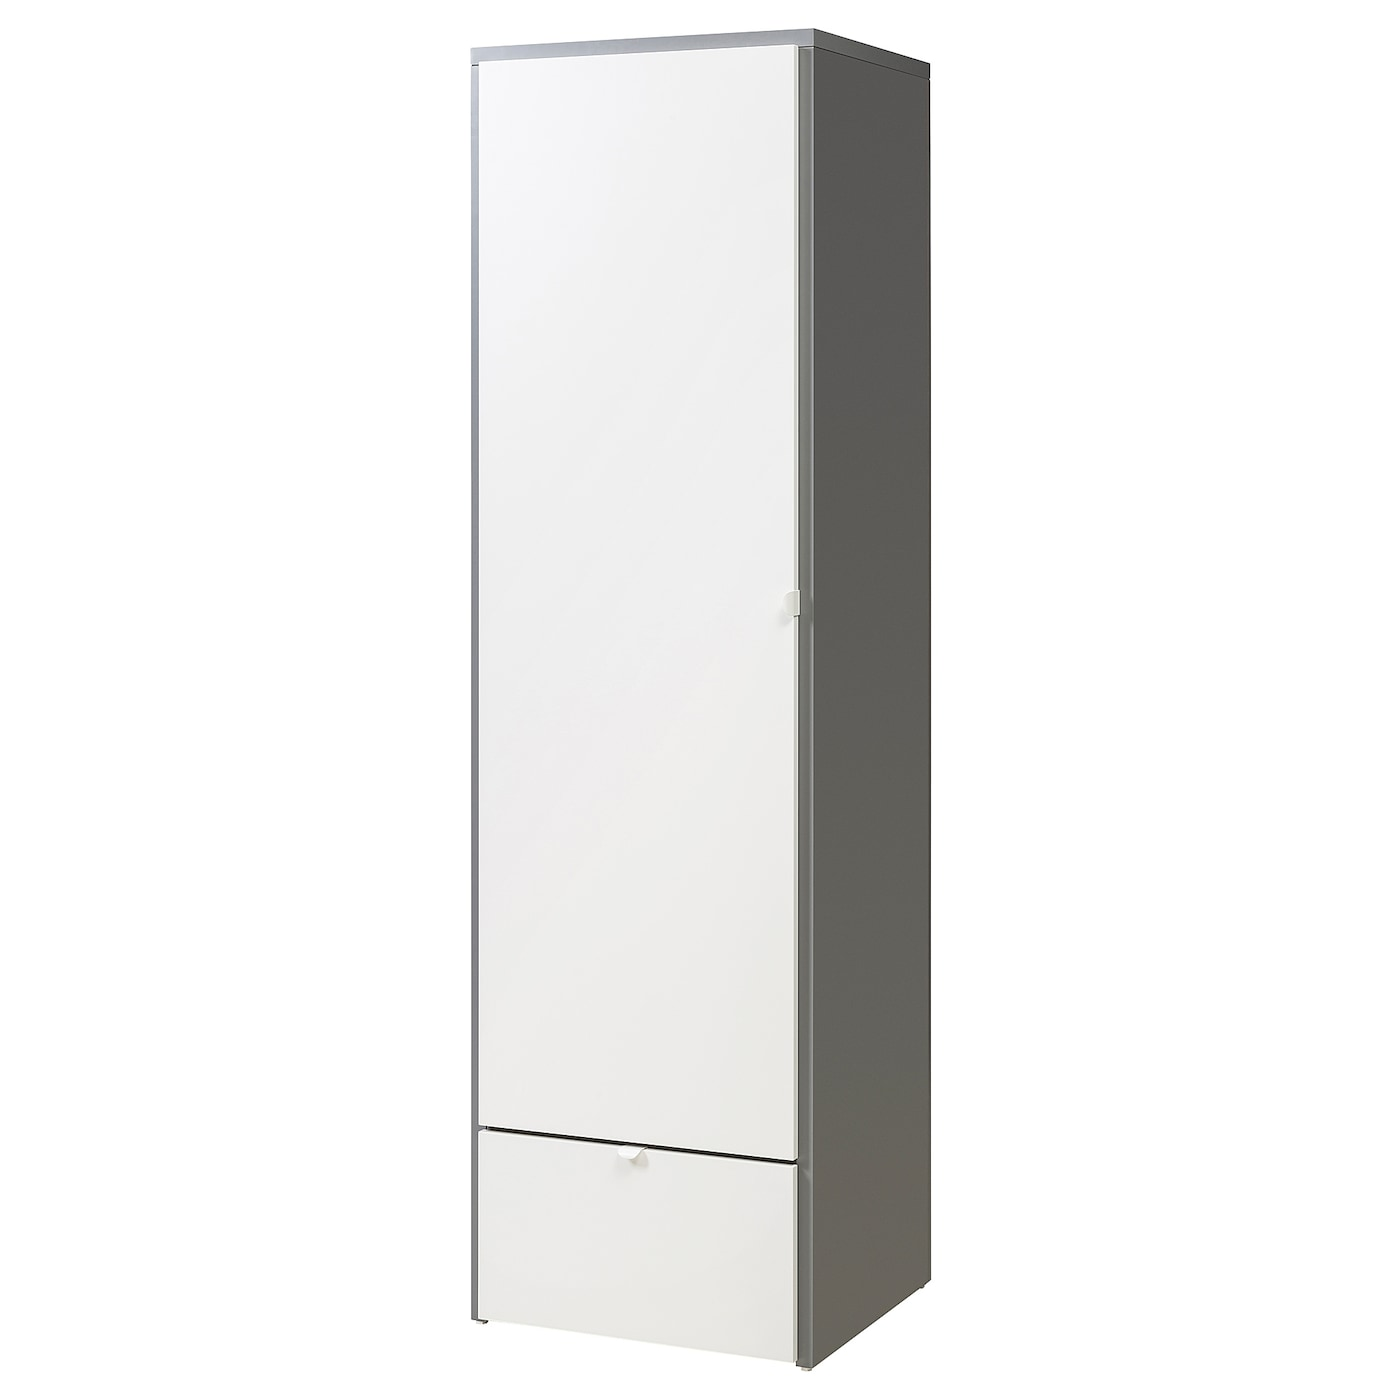 Visthus wardrobe grey white 63x59x216 cm ikea for Miroir 80 x 90